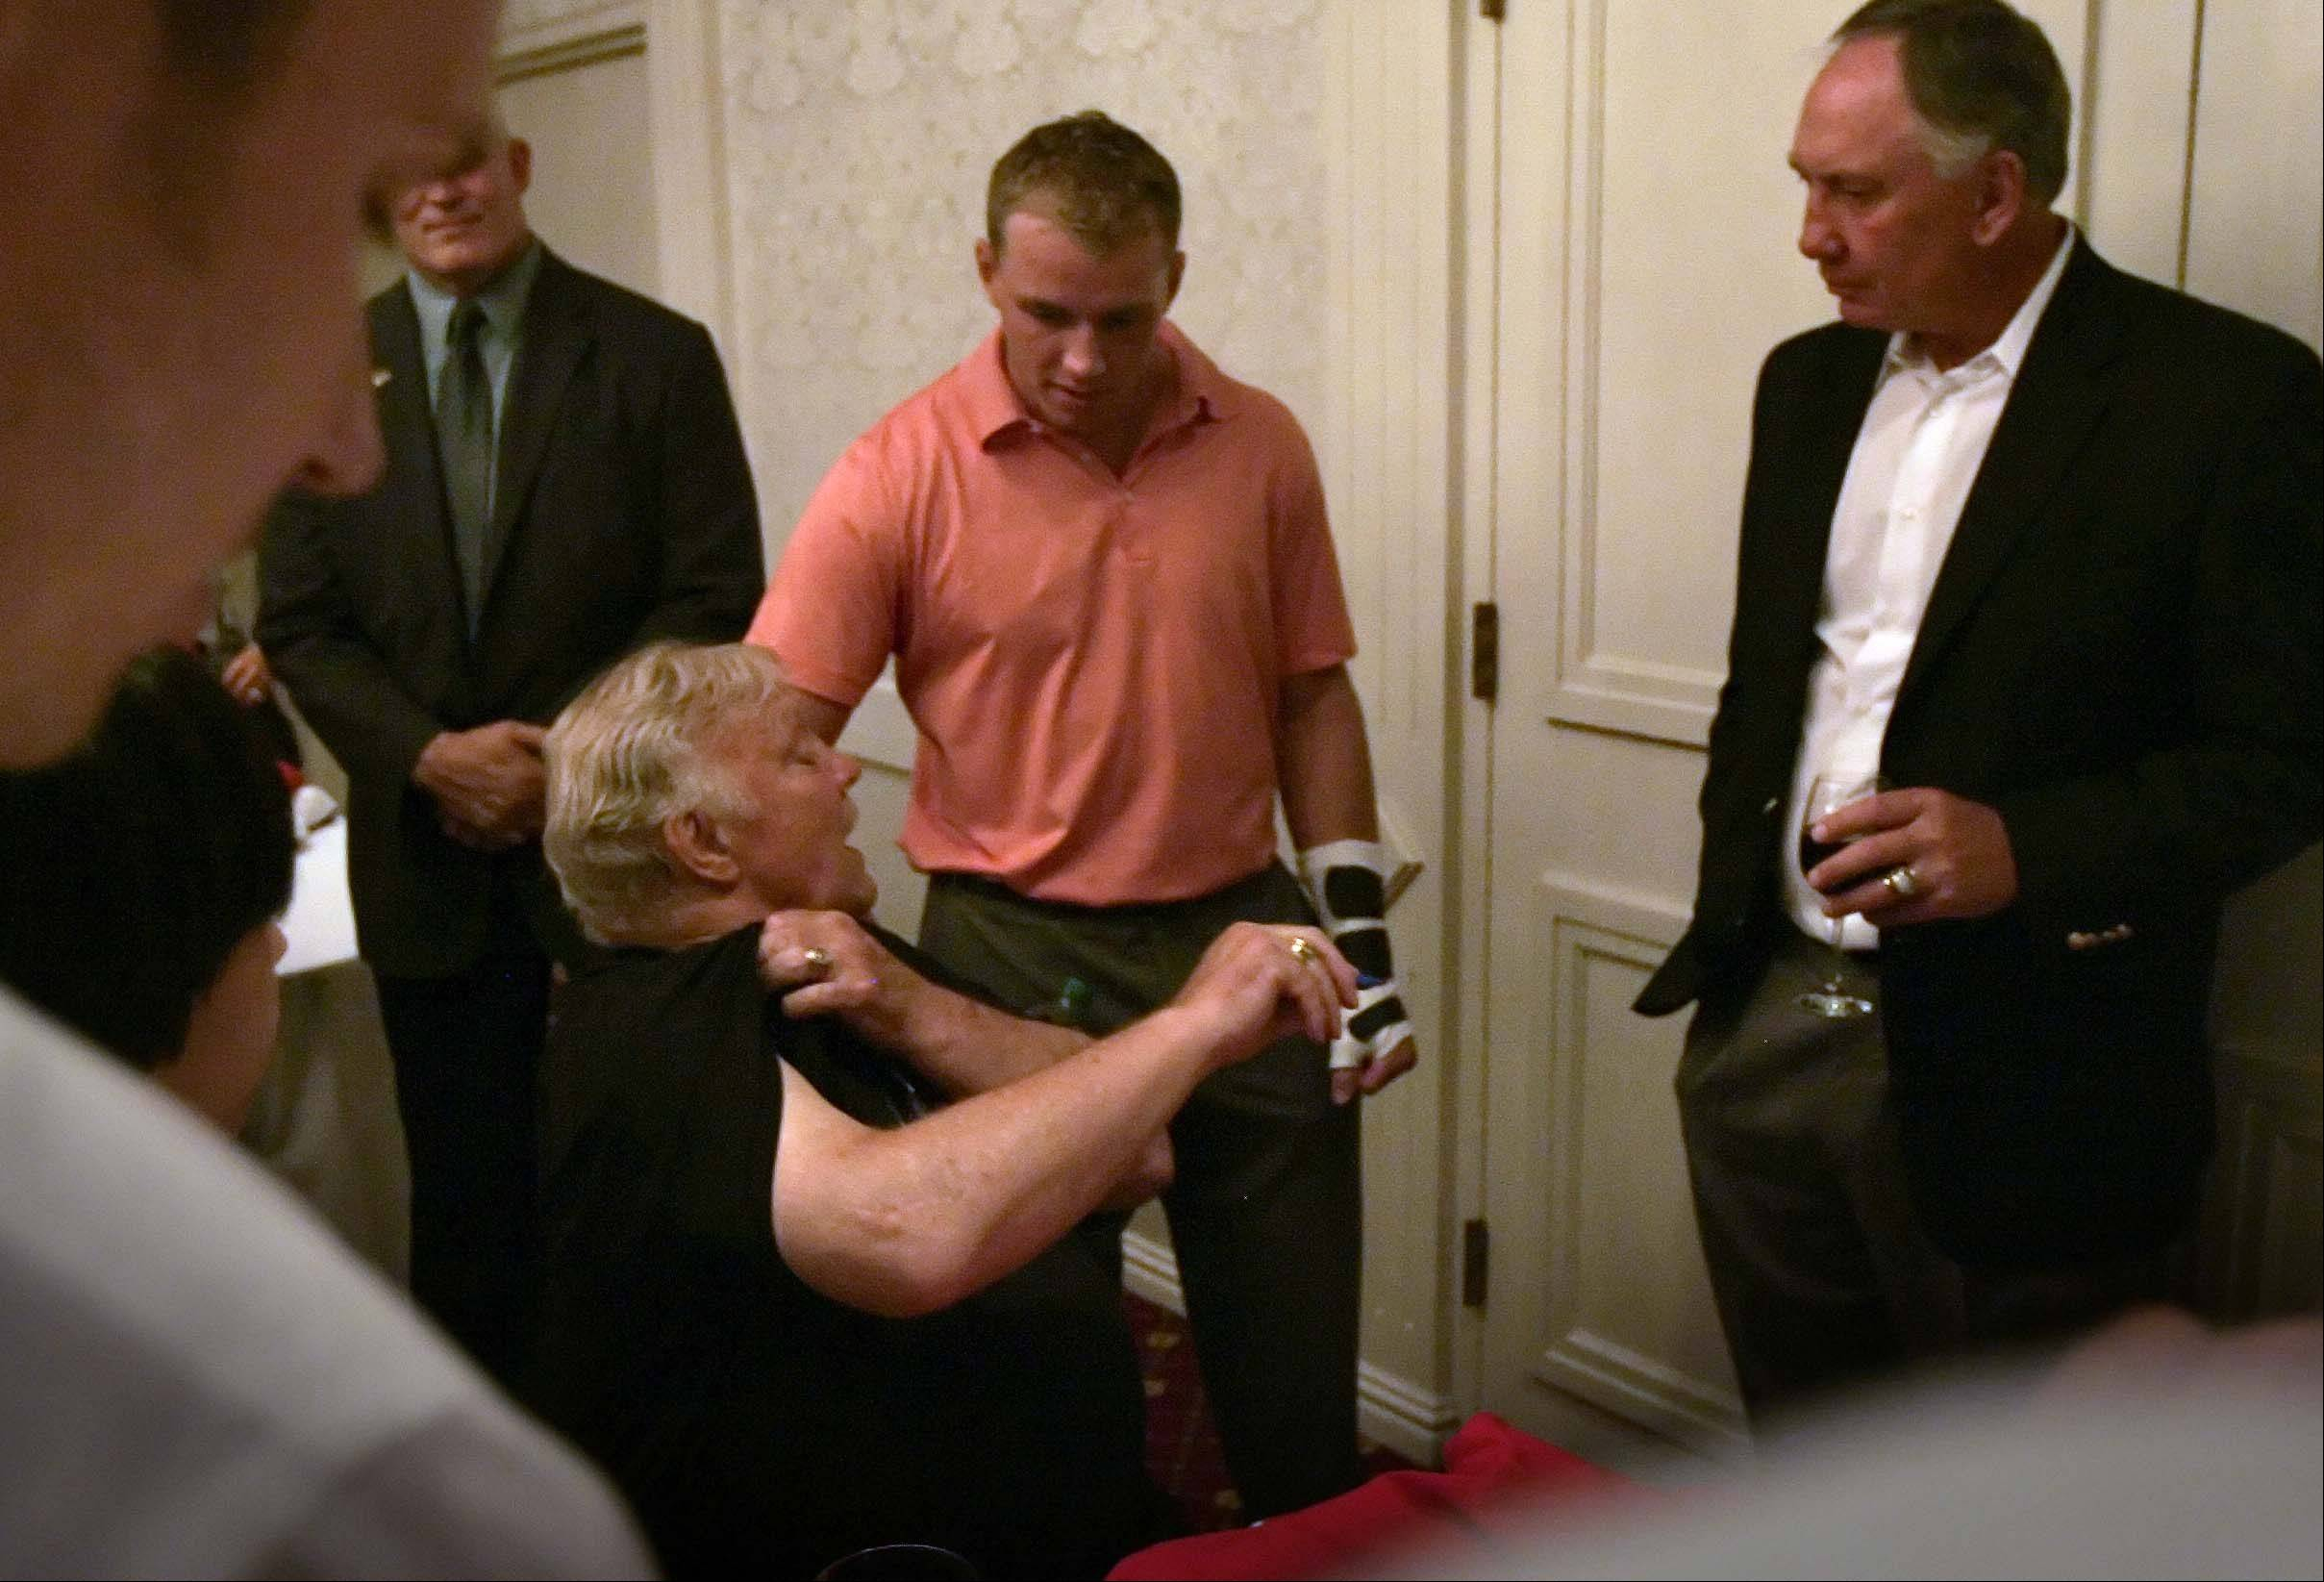 Blackhawks legend Bobby Hull, seated, chats with Patrick Kane about injuries Friday during the Blackhawks fan convention. Kane is sporting a cast on his left wrist and will undergo surgery to repair a scaphoid fracture.